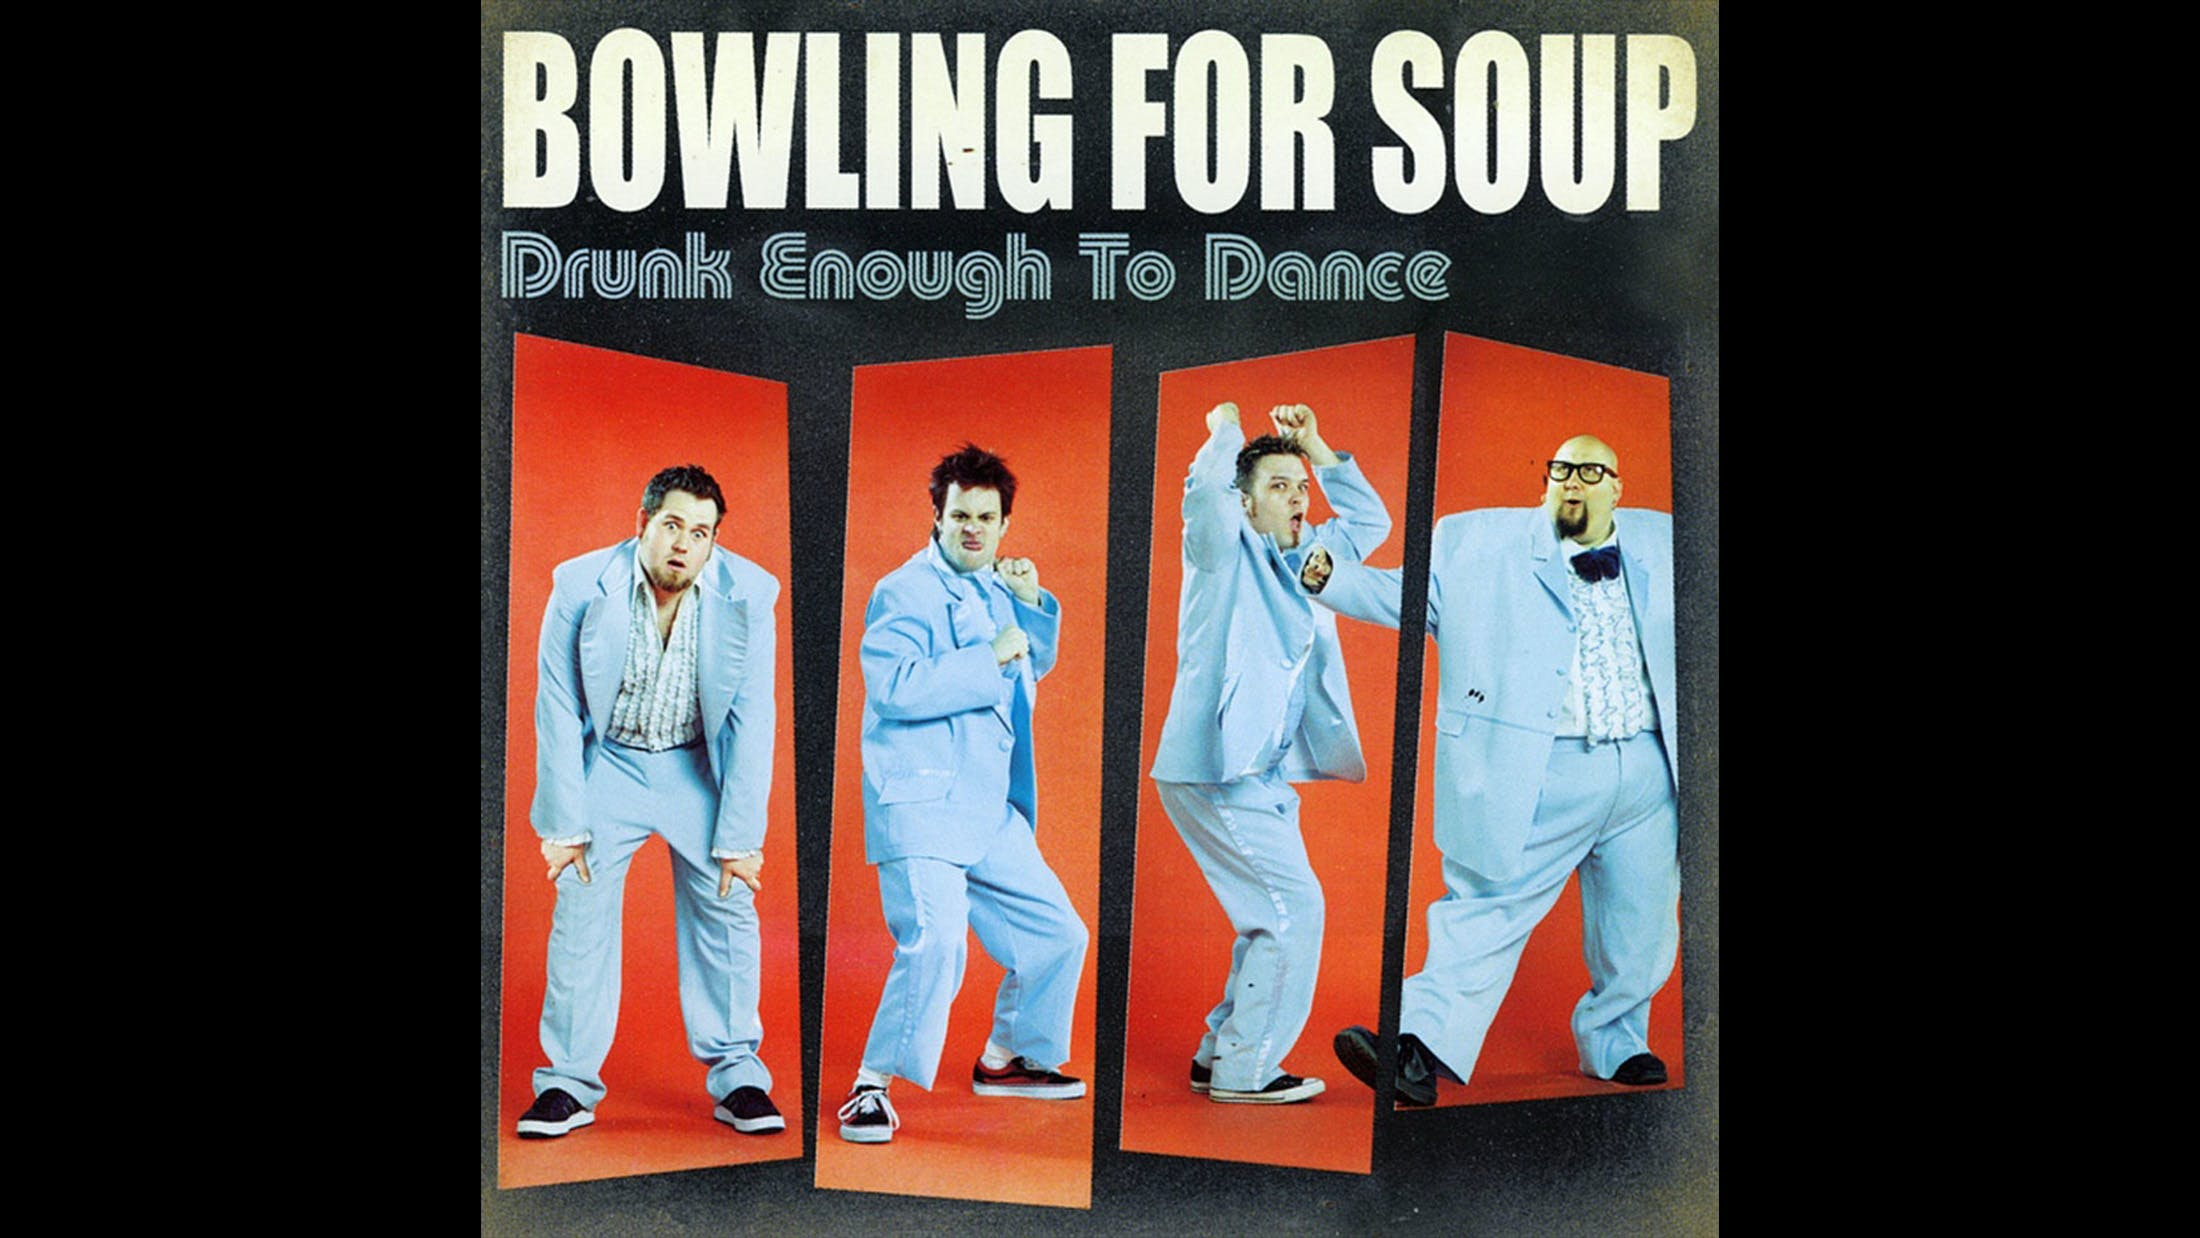 21. Bowling For Soup - Drunk Enough To Dance (2002)